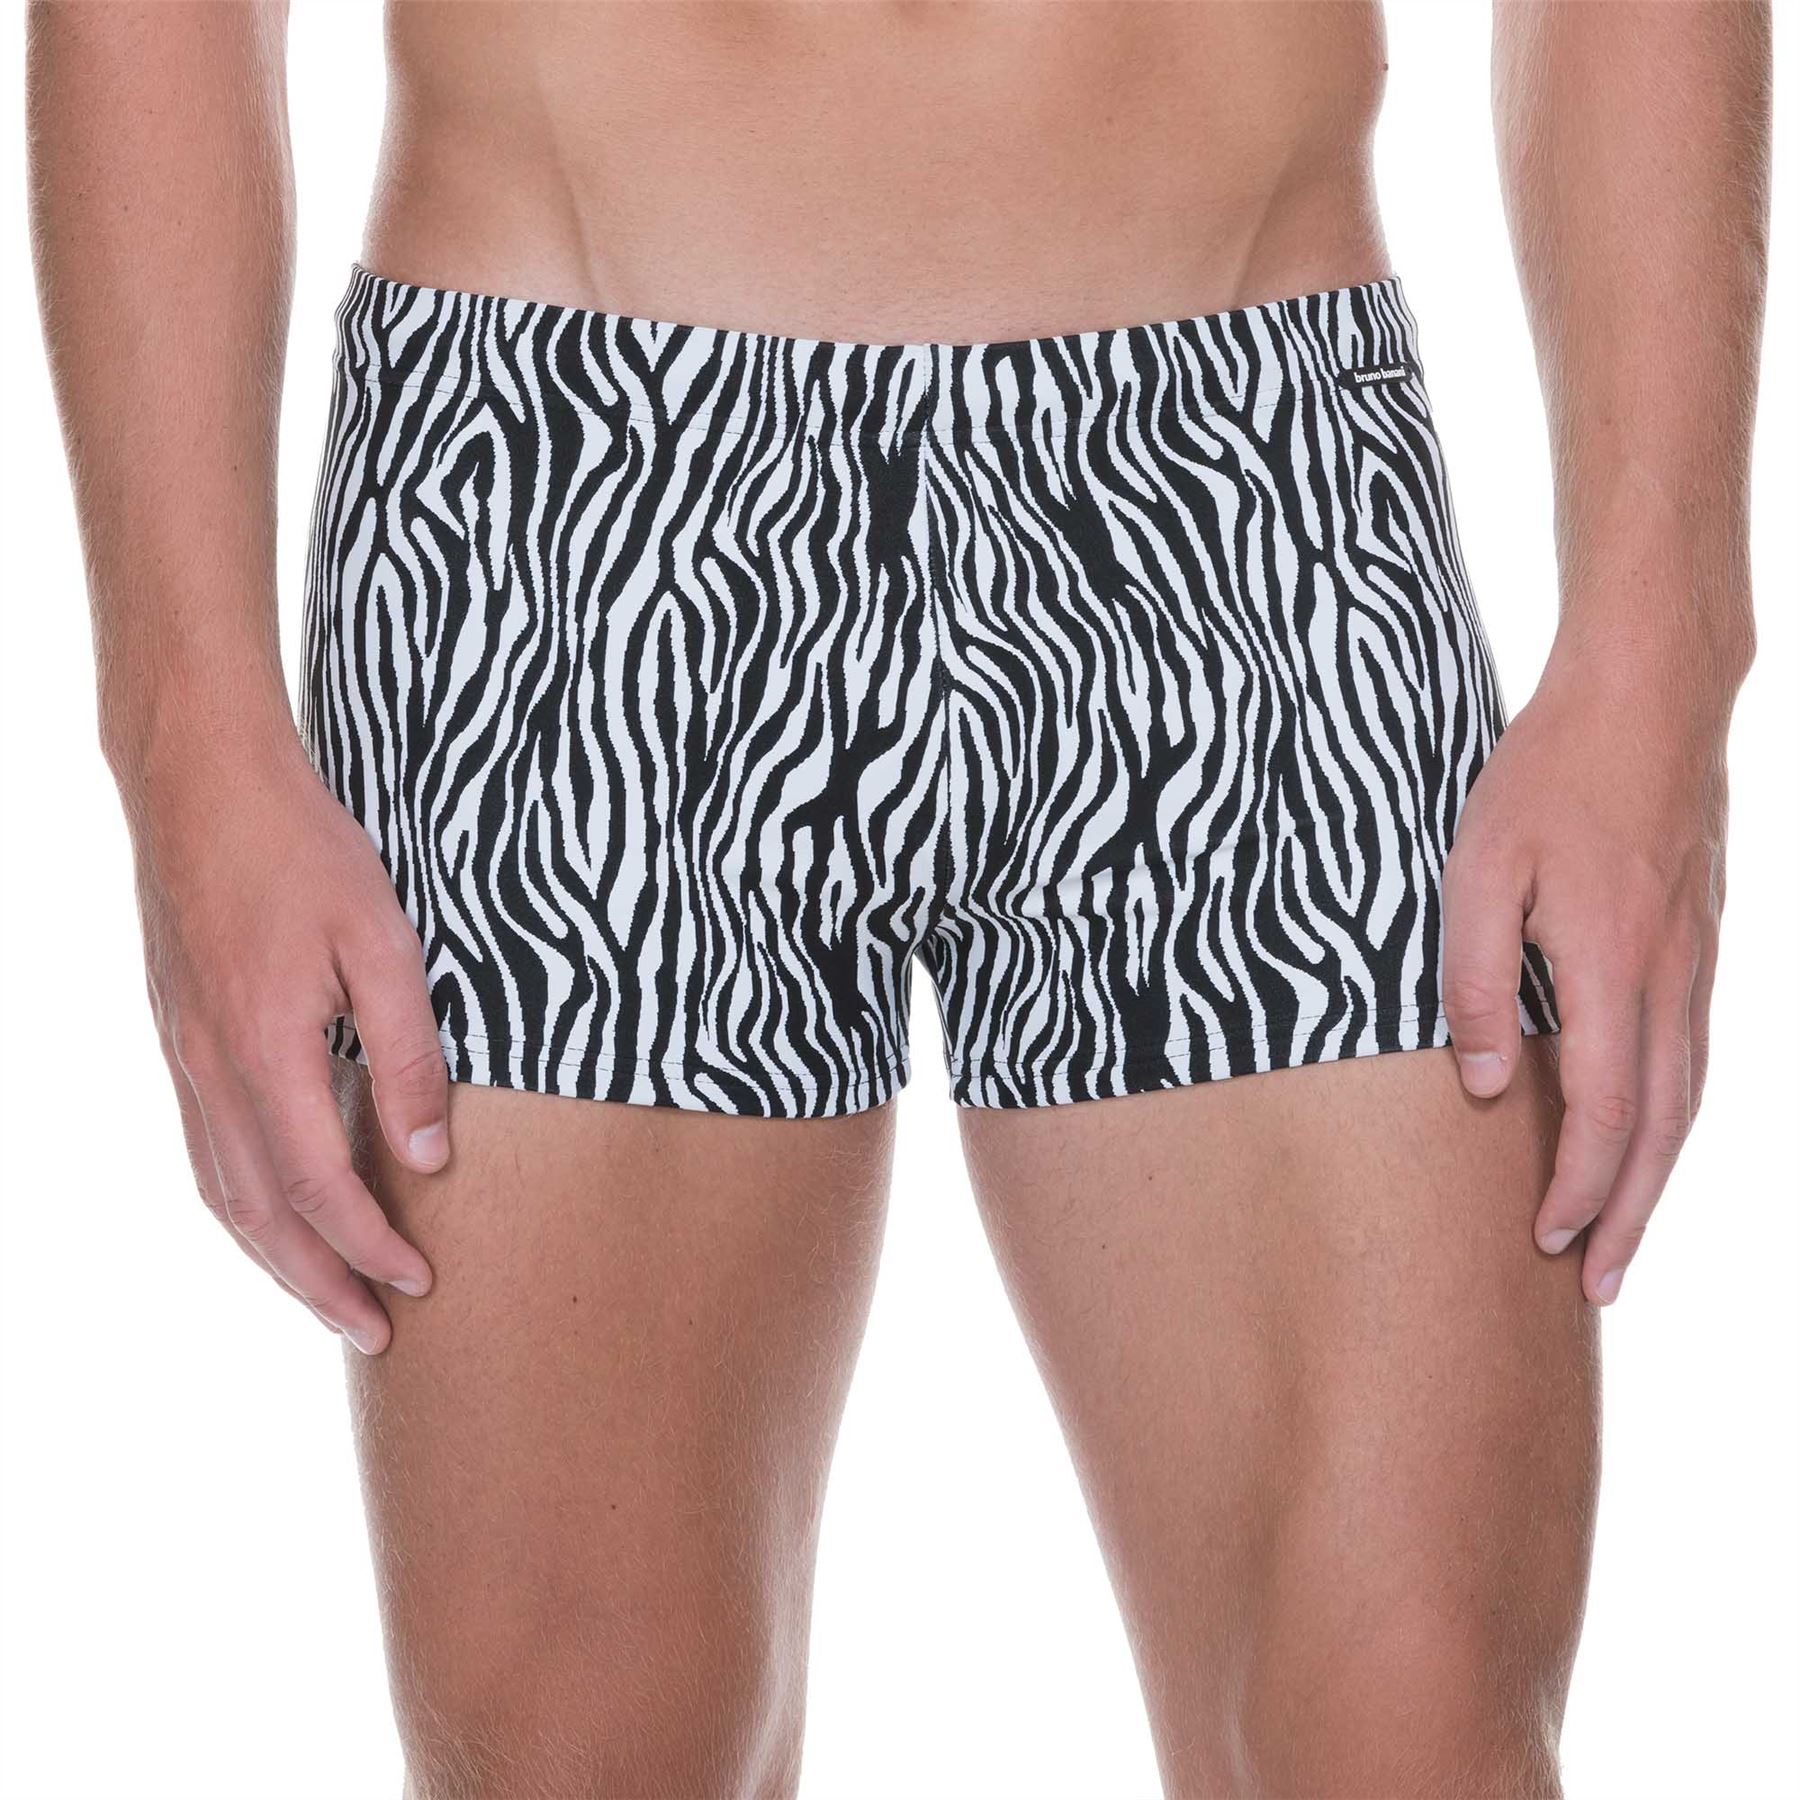 60300cb556 Bruno Banani Men's Zebra Life Swim Short Swimwear Black White Swimming Trunk